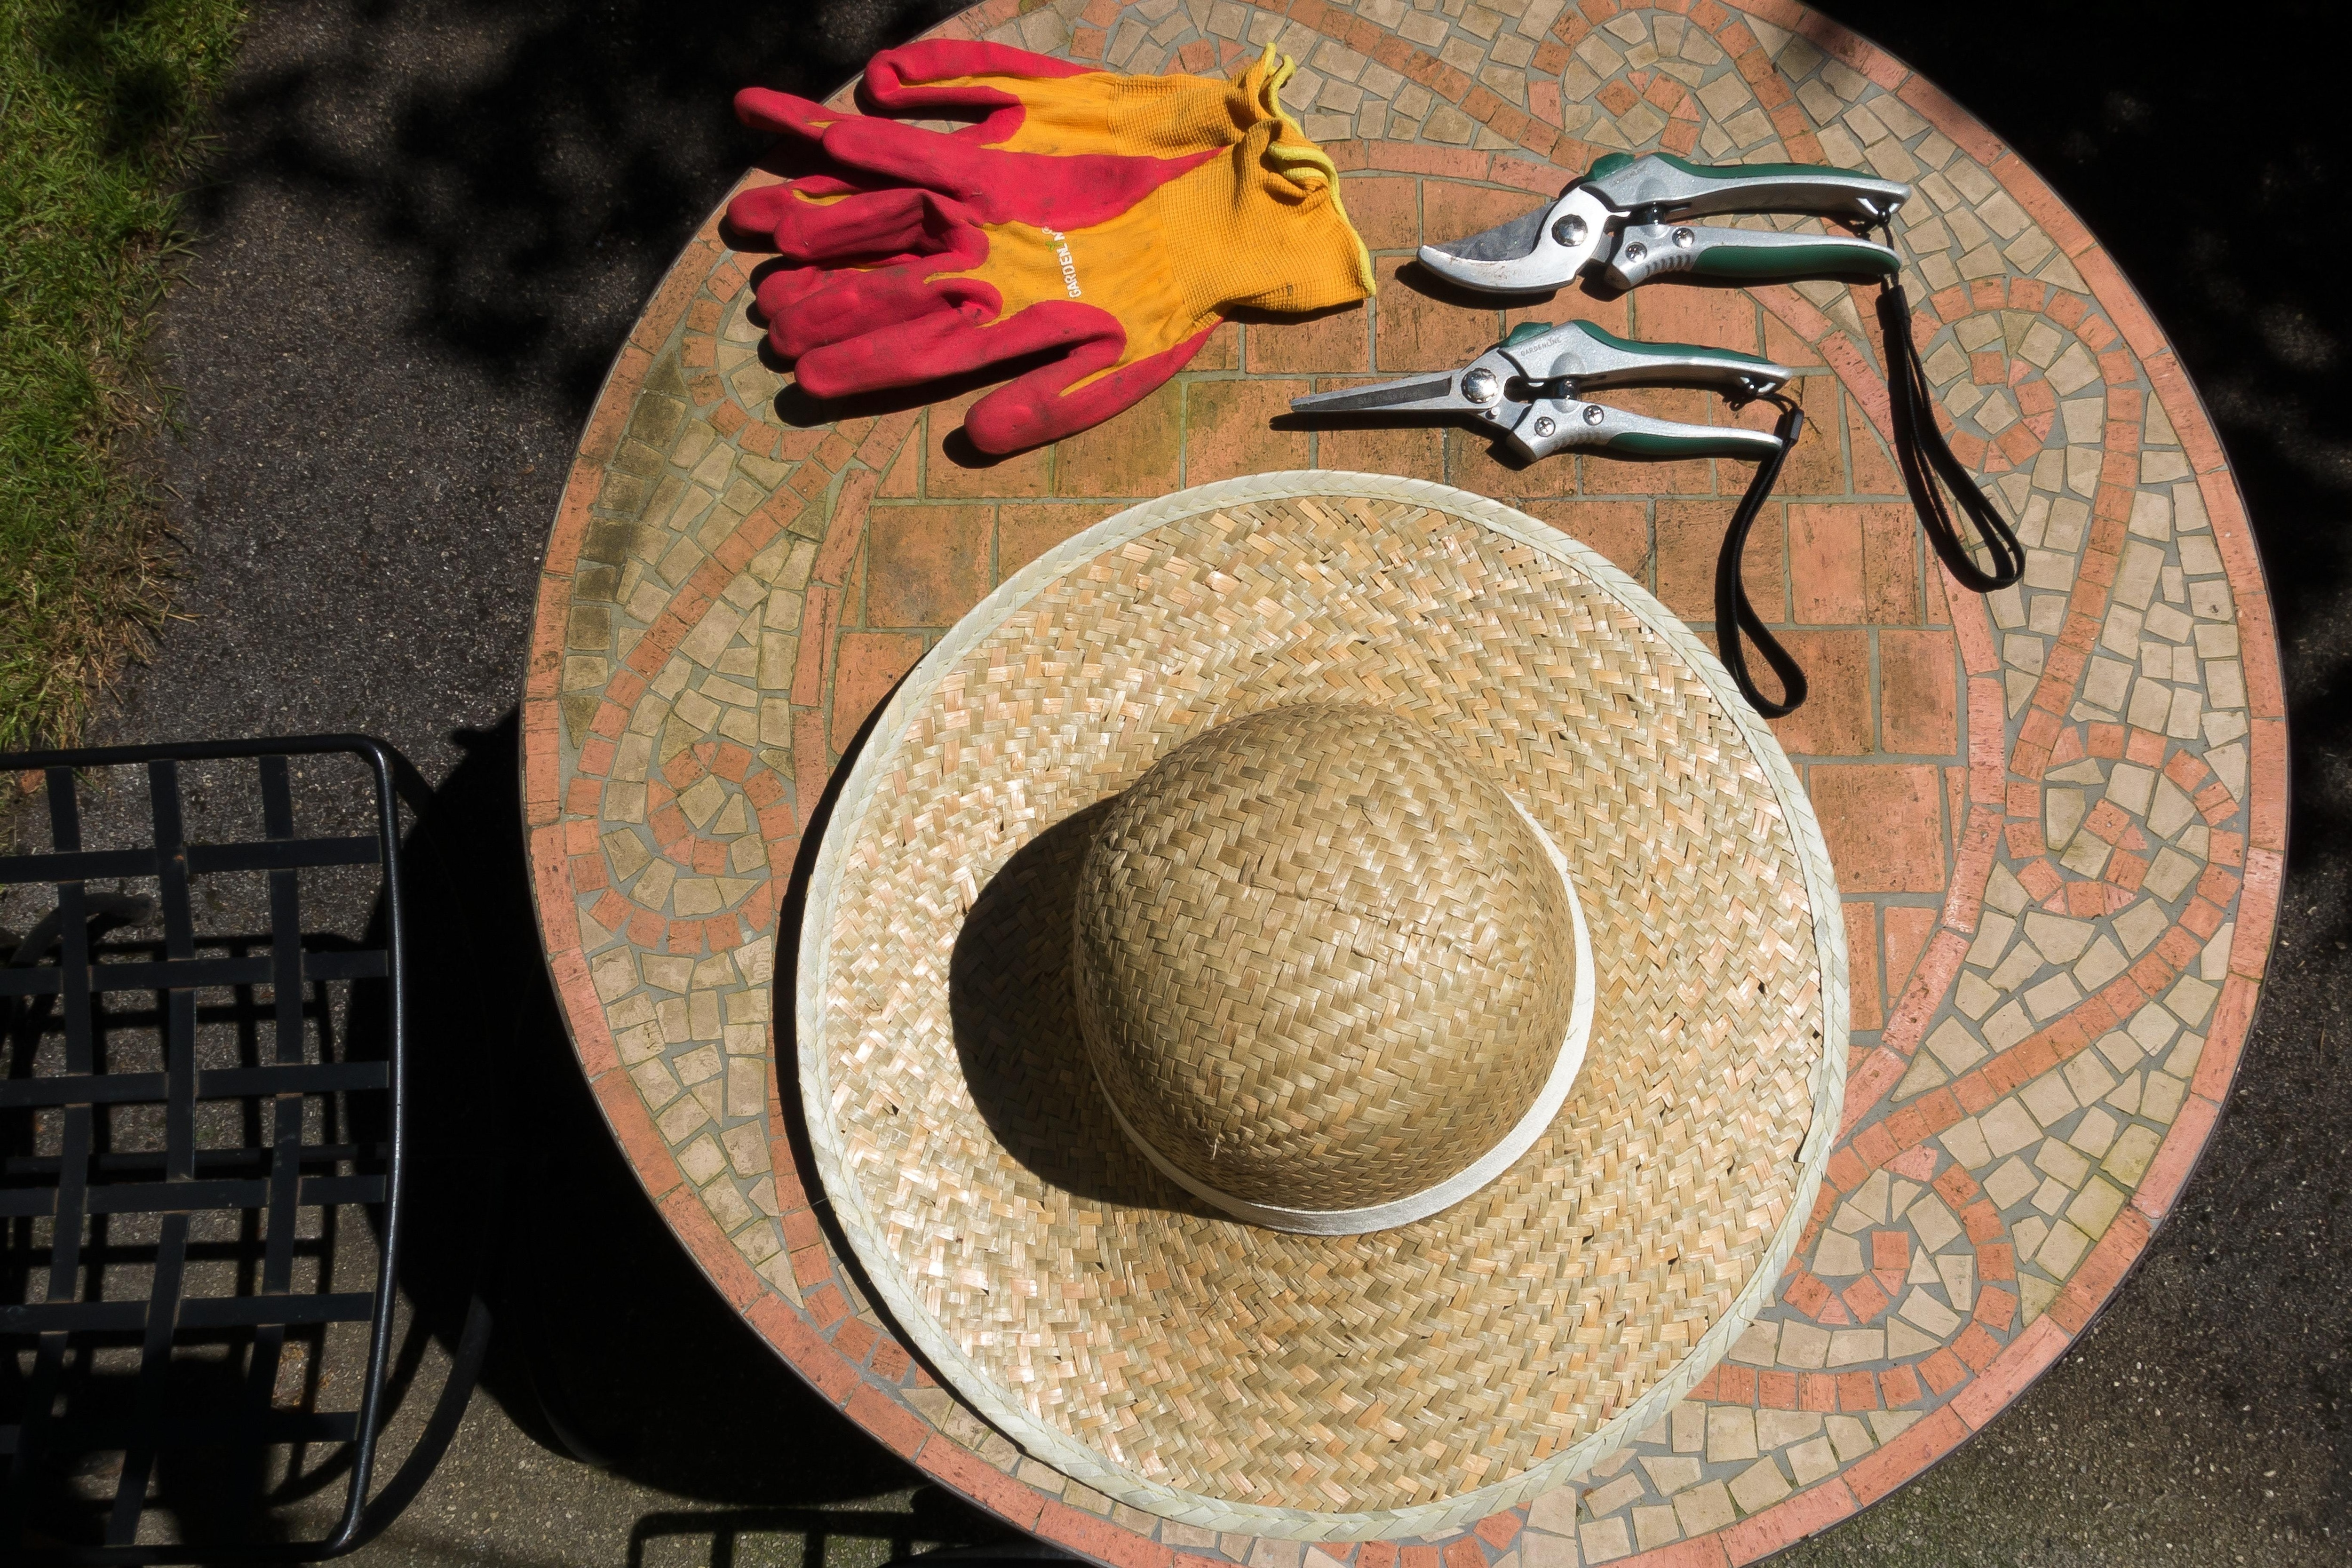 Gardening tools, including a woven hat, gloves, and pruners, sit on an outdoor table